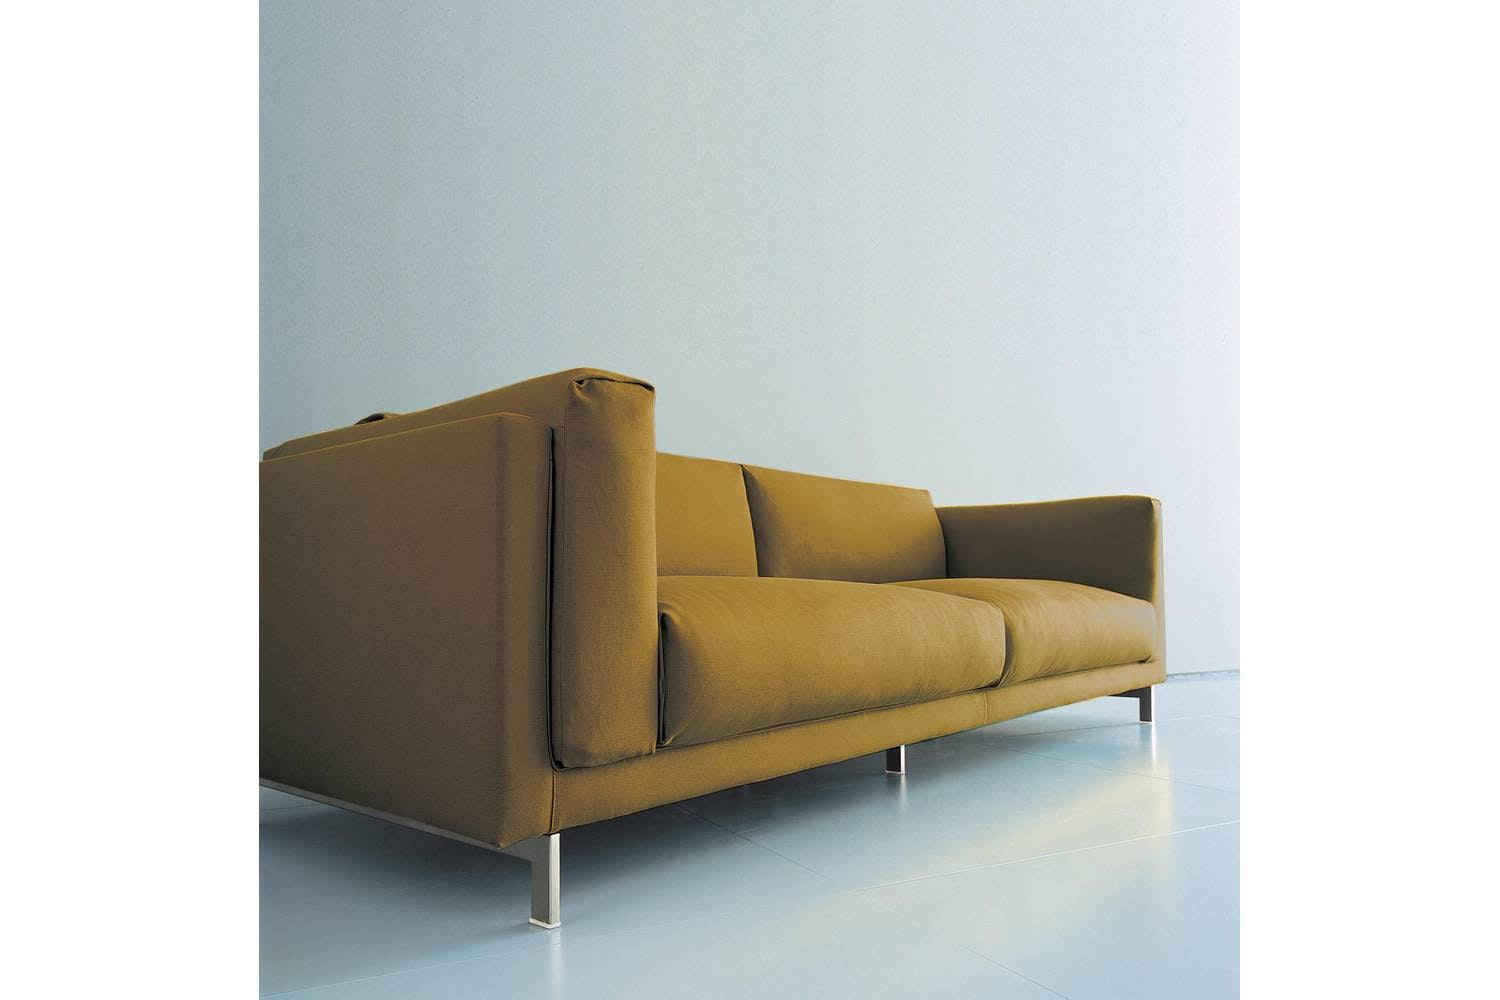 Family Life Sofa by Piero Lissoni for Living Divani